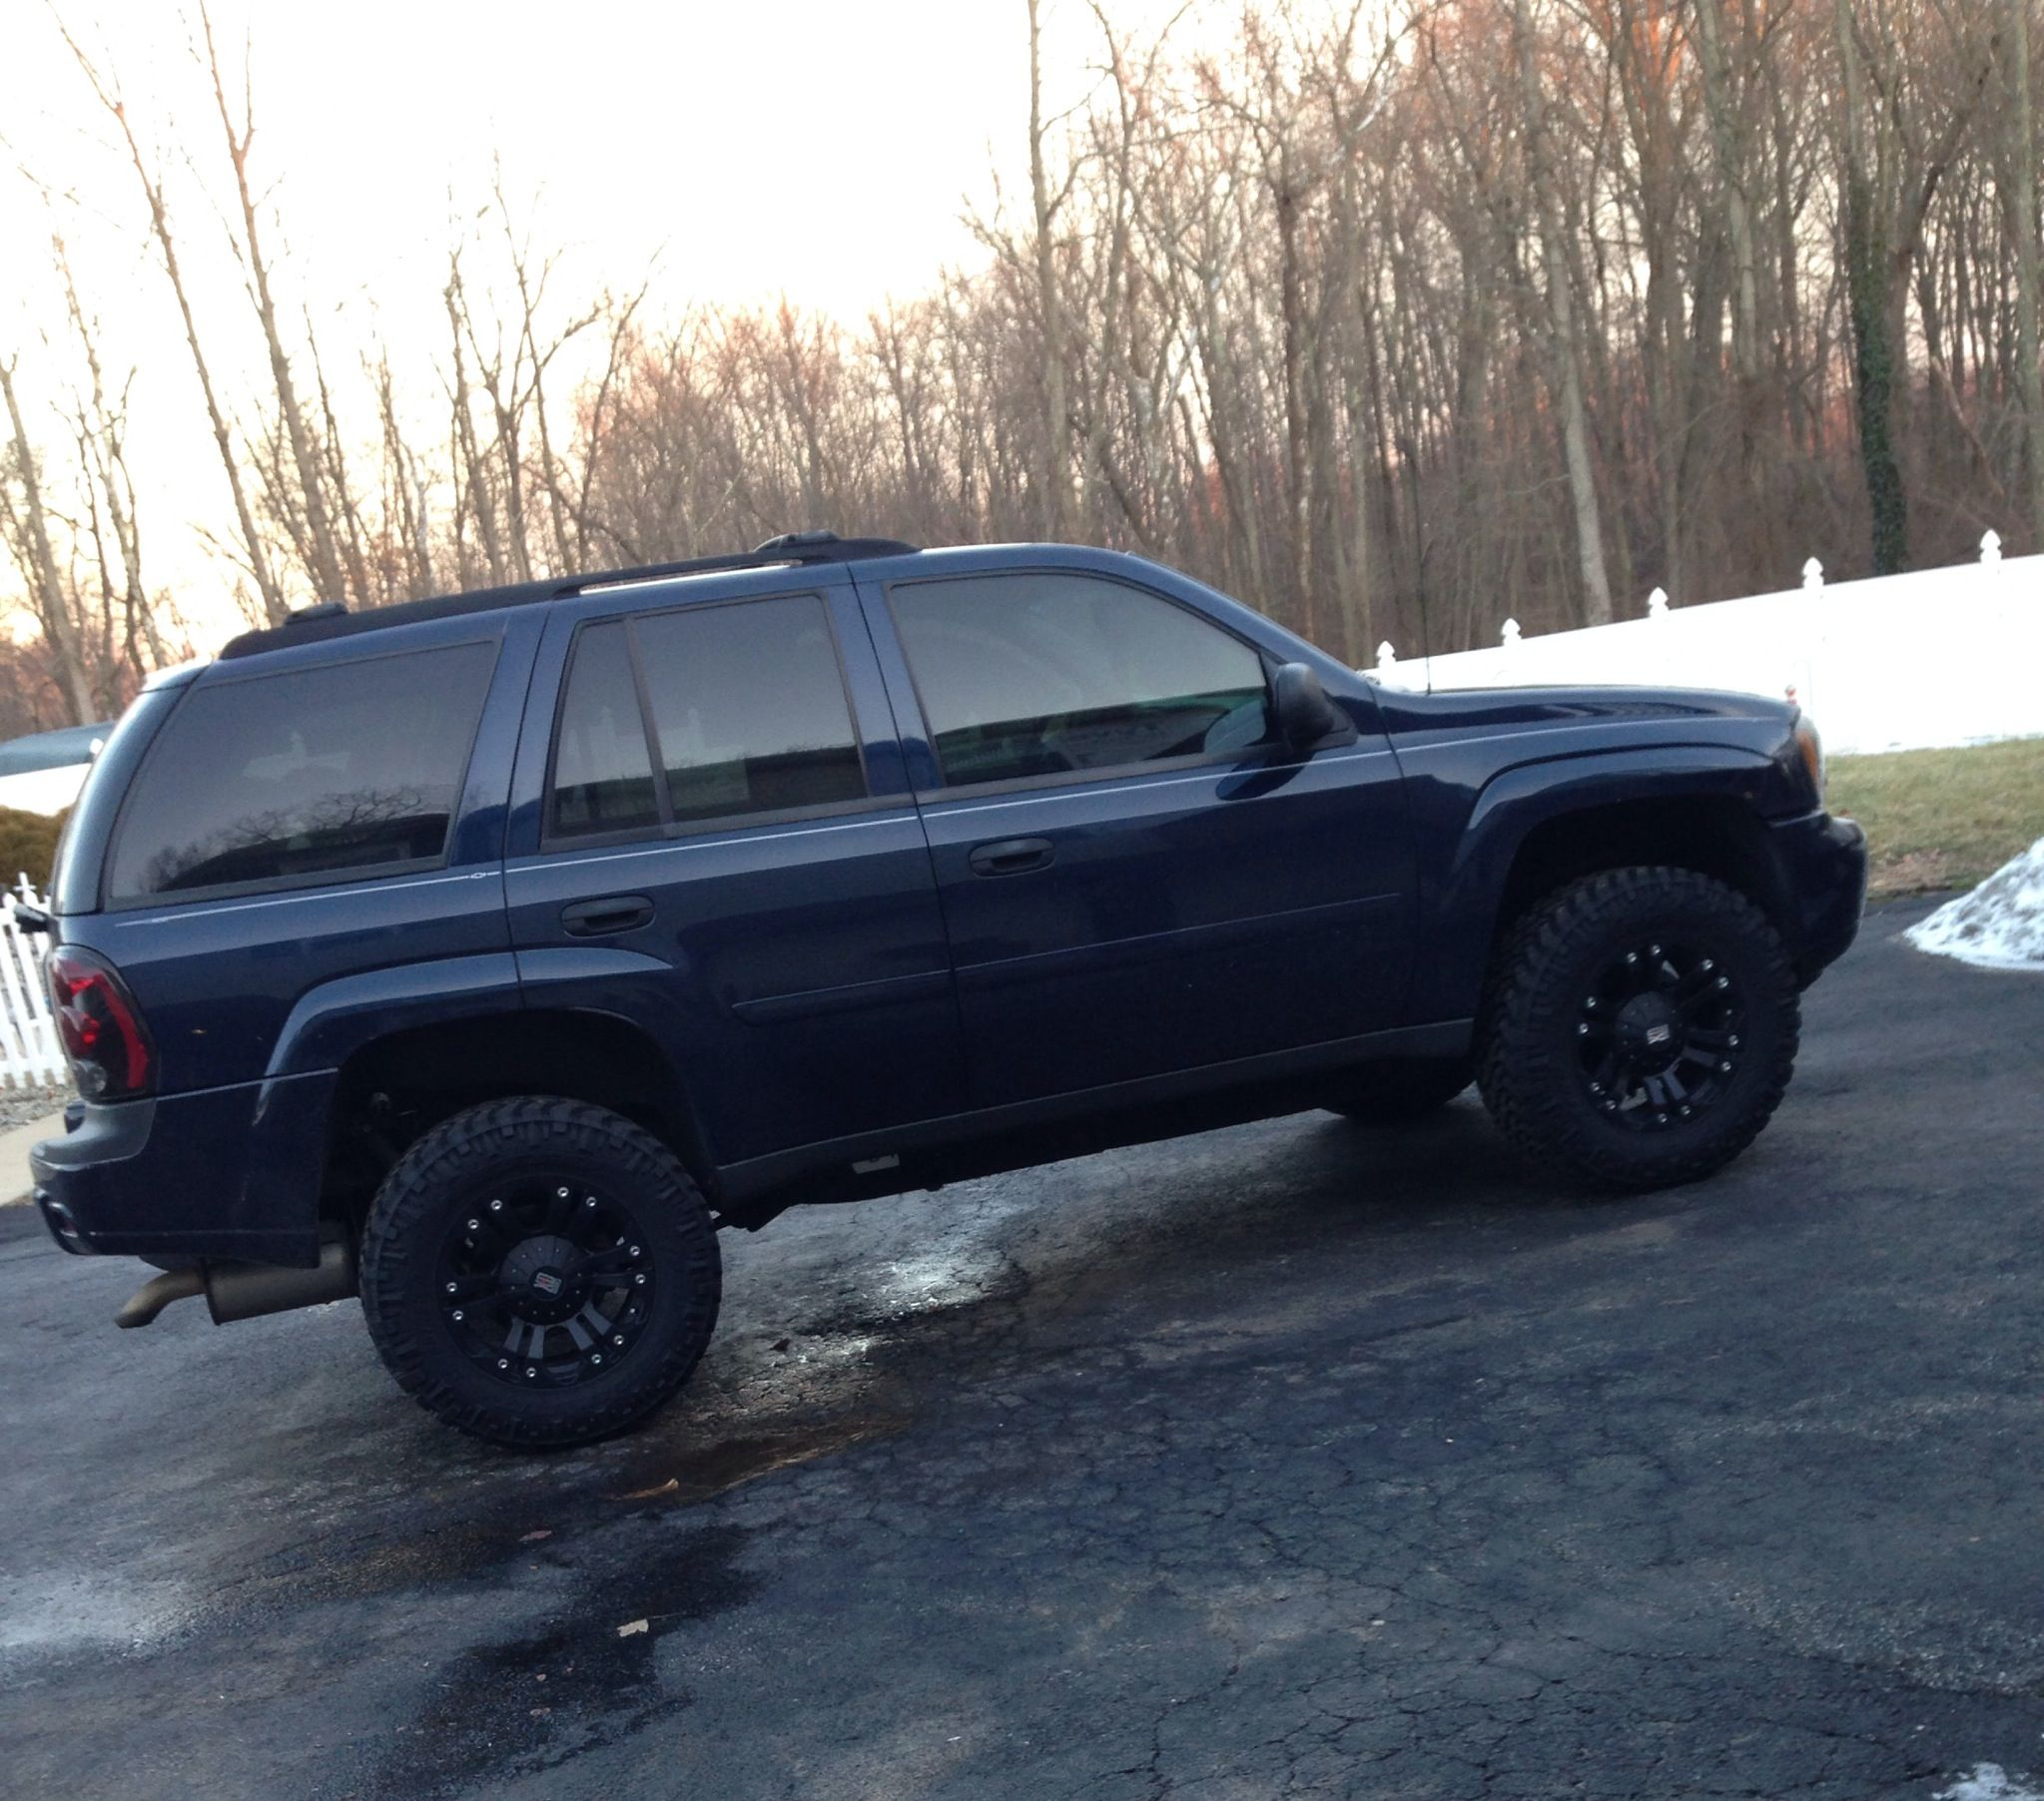 2007 6 Inch Lifted Chevy Trailblazer On 33 Inch Nitto S Wanted